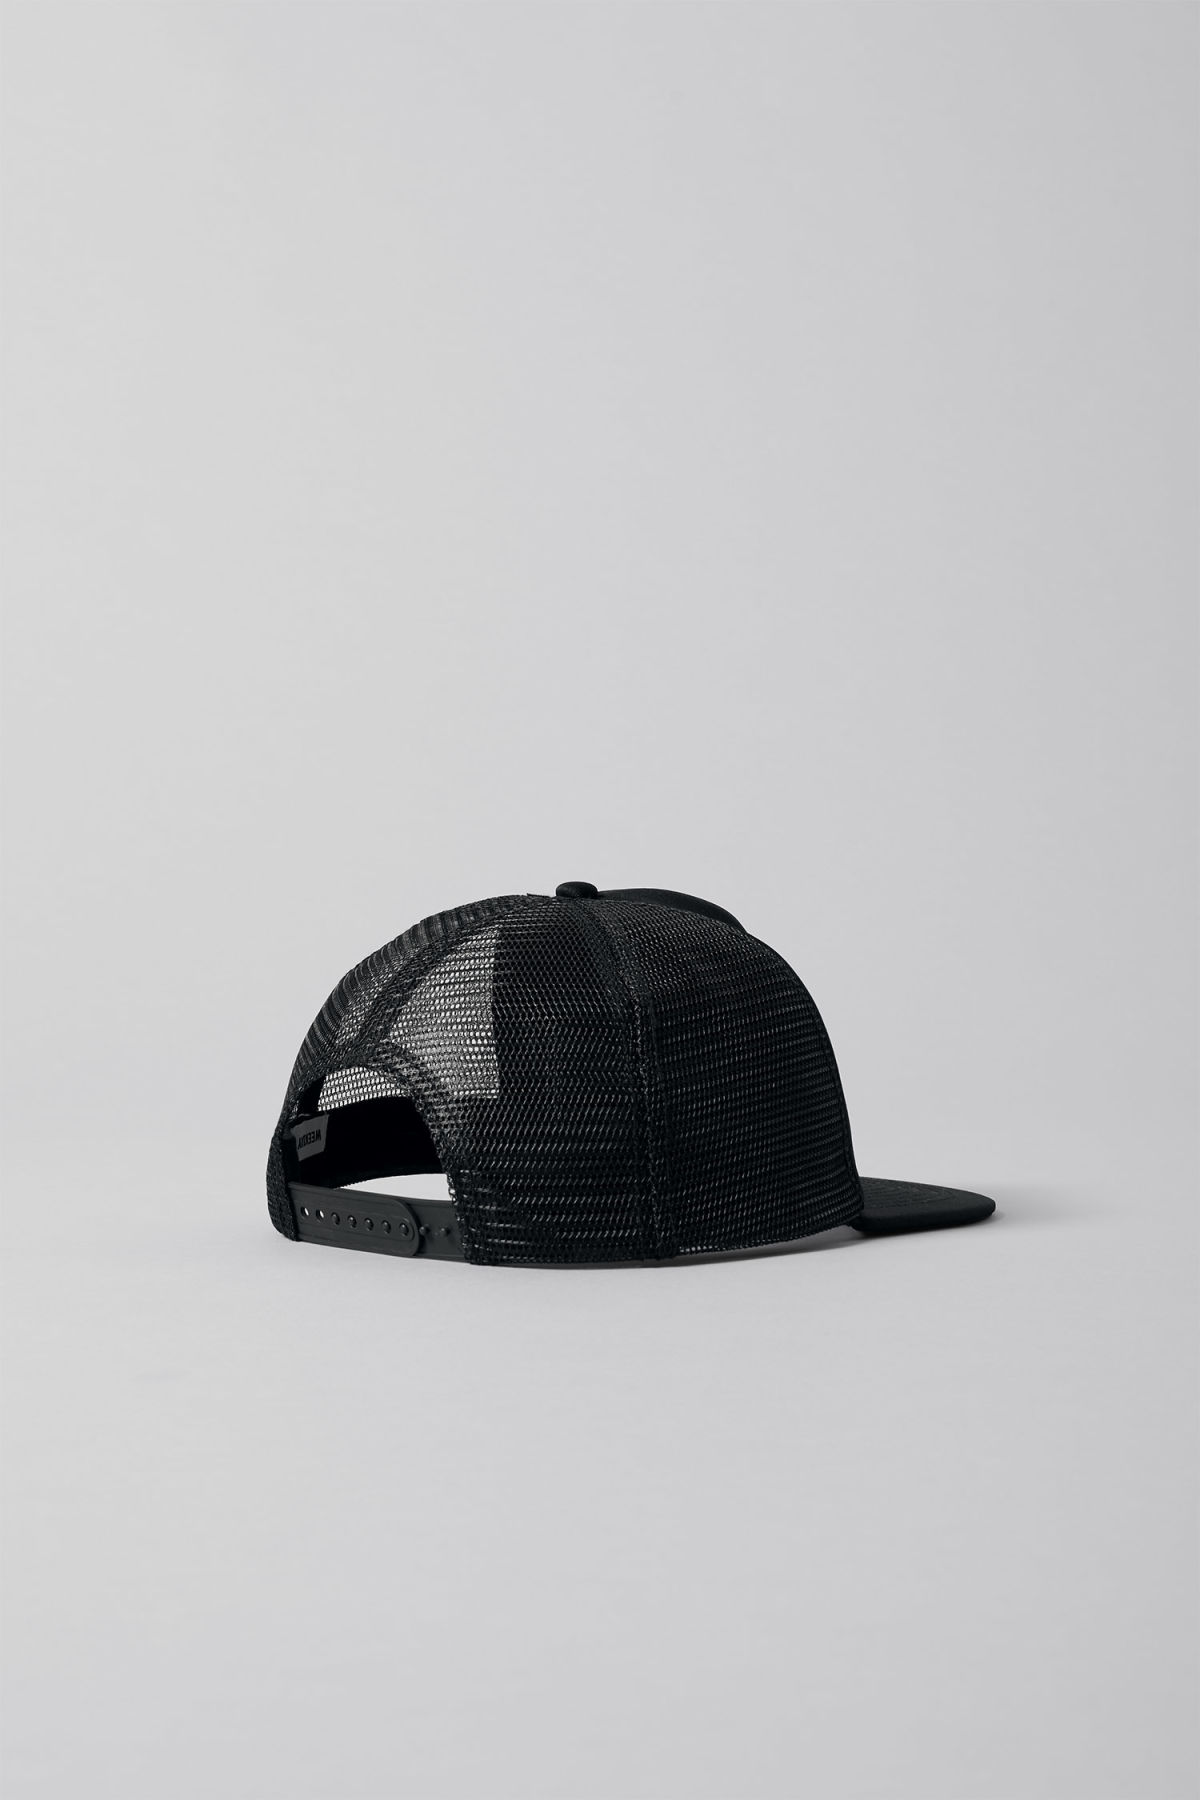 Detailed image of Weekday can cap in black